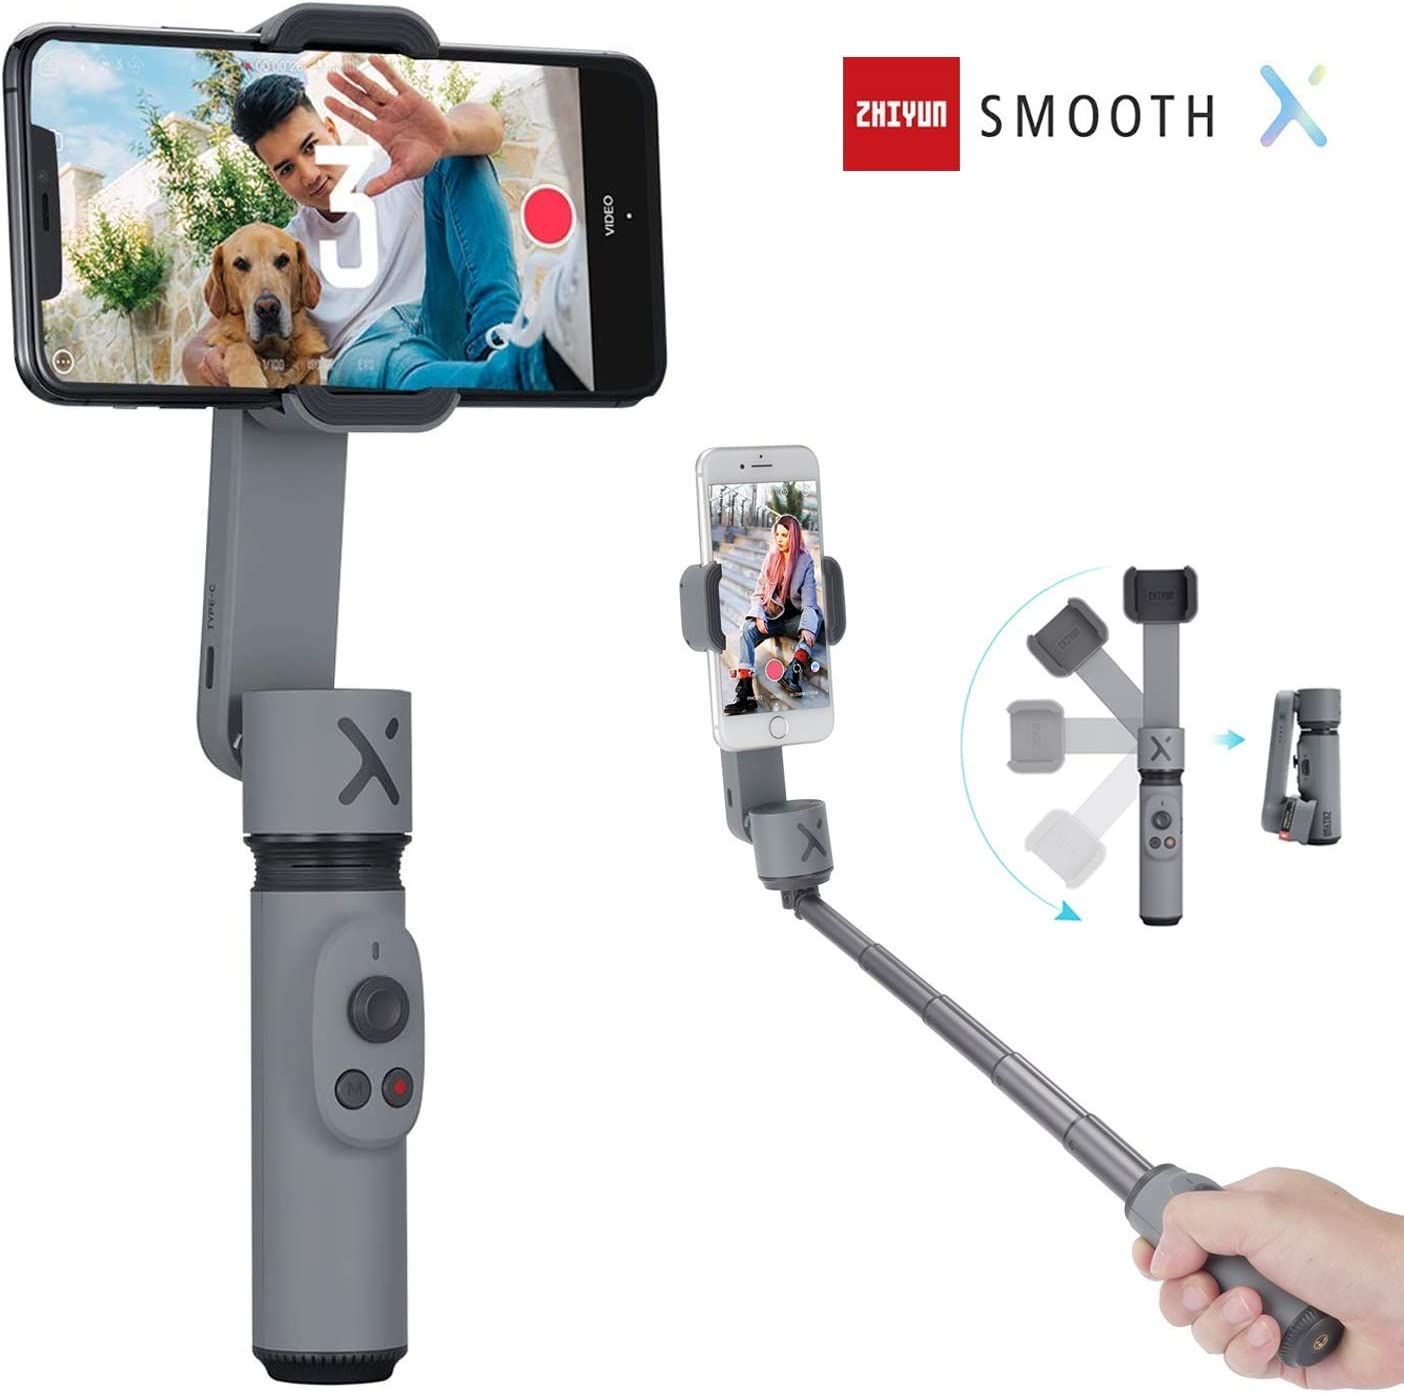 Amazon.com: Zhiyun Smooth X 2-Axis Gimbal Stabilizer for iPhone 11 ...